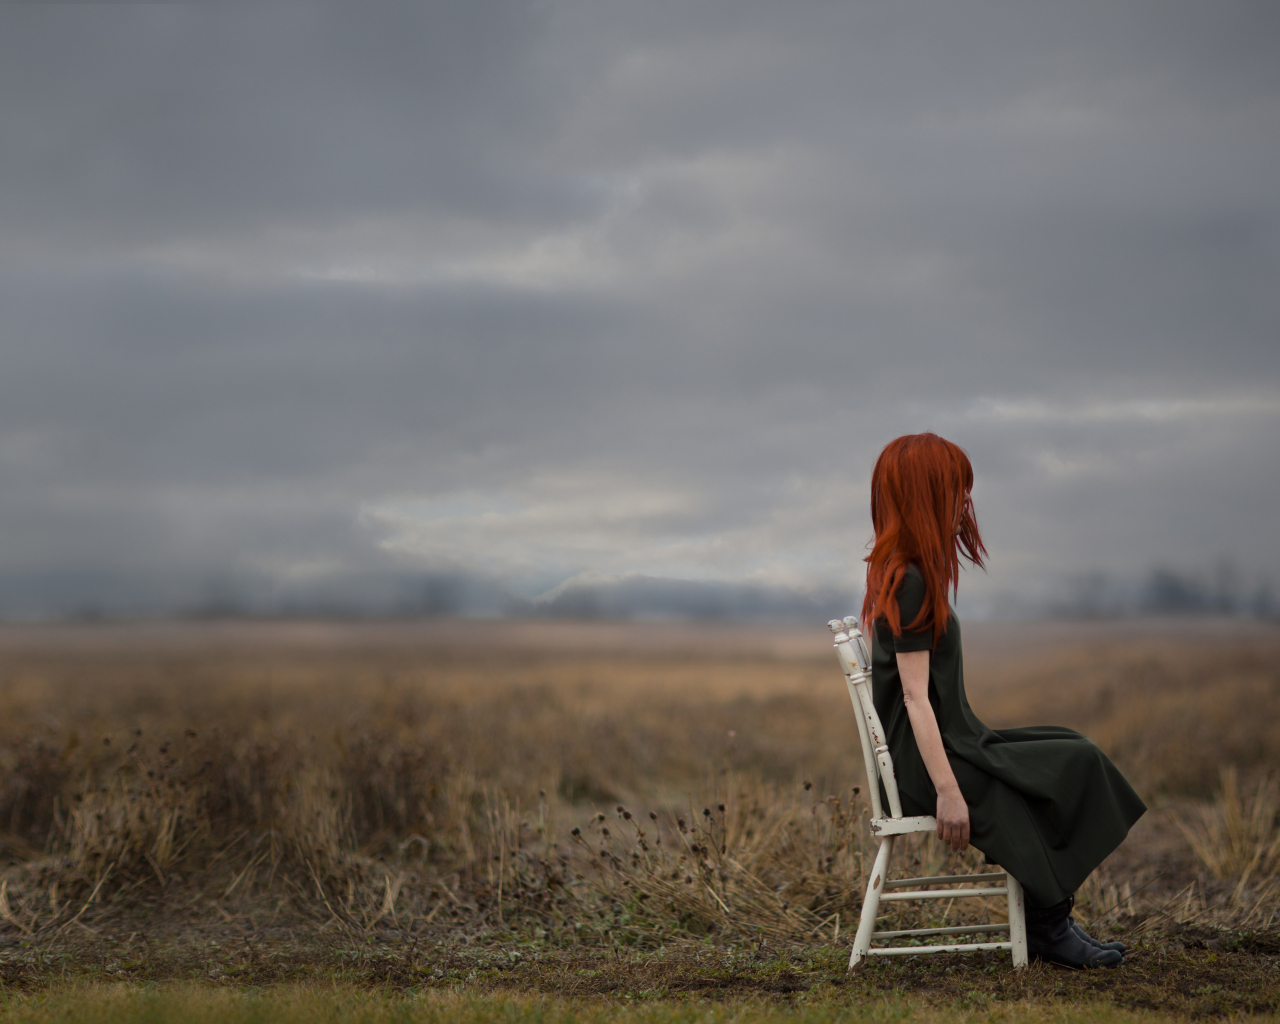 Patty Maher, Waiting for Godot, 2016.